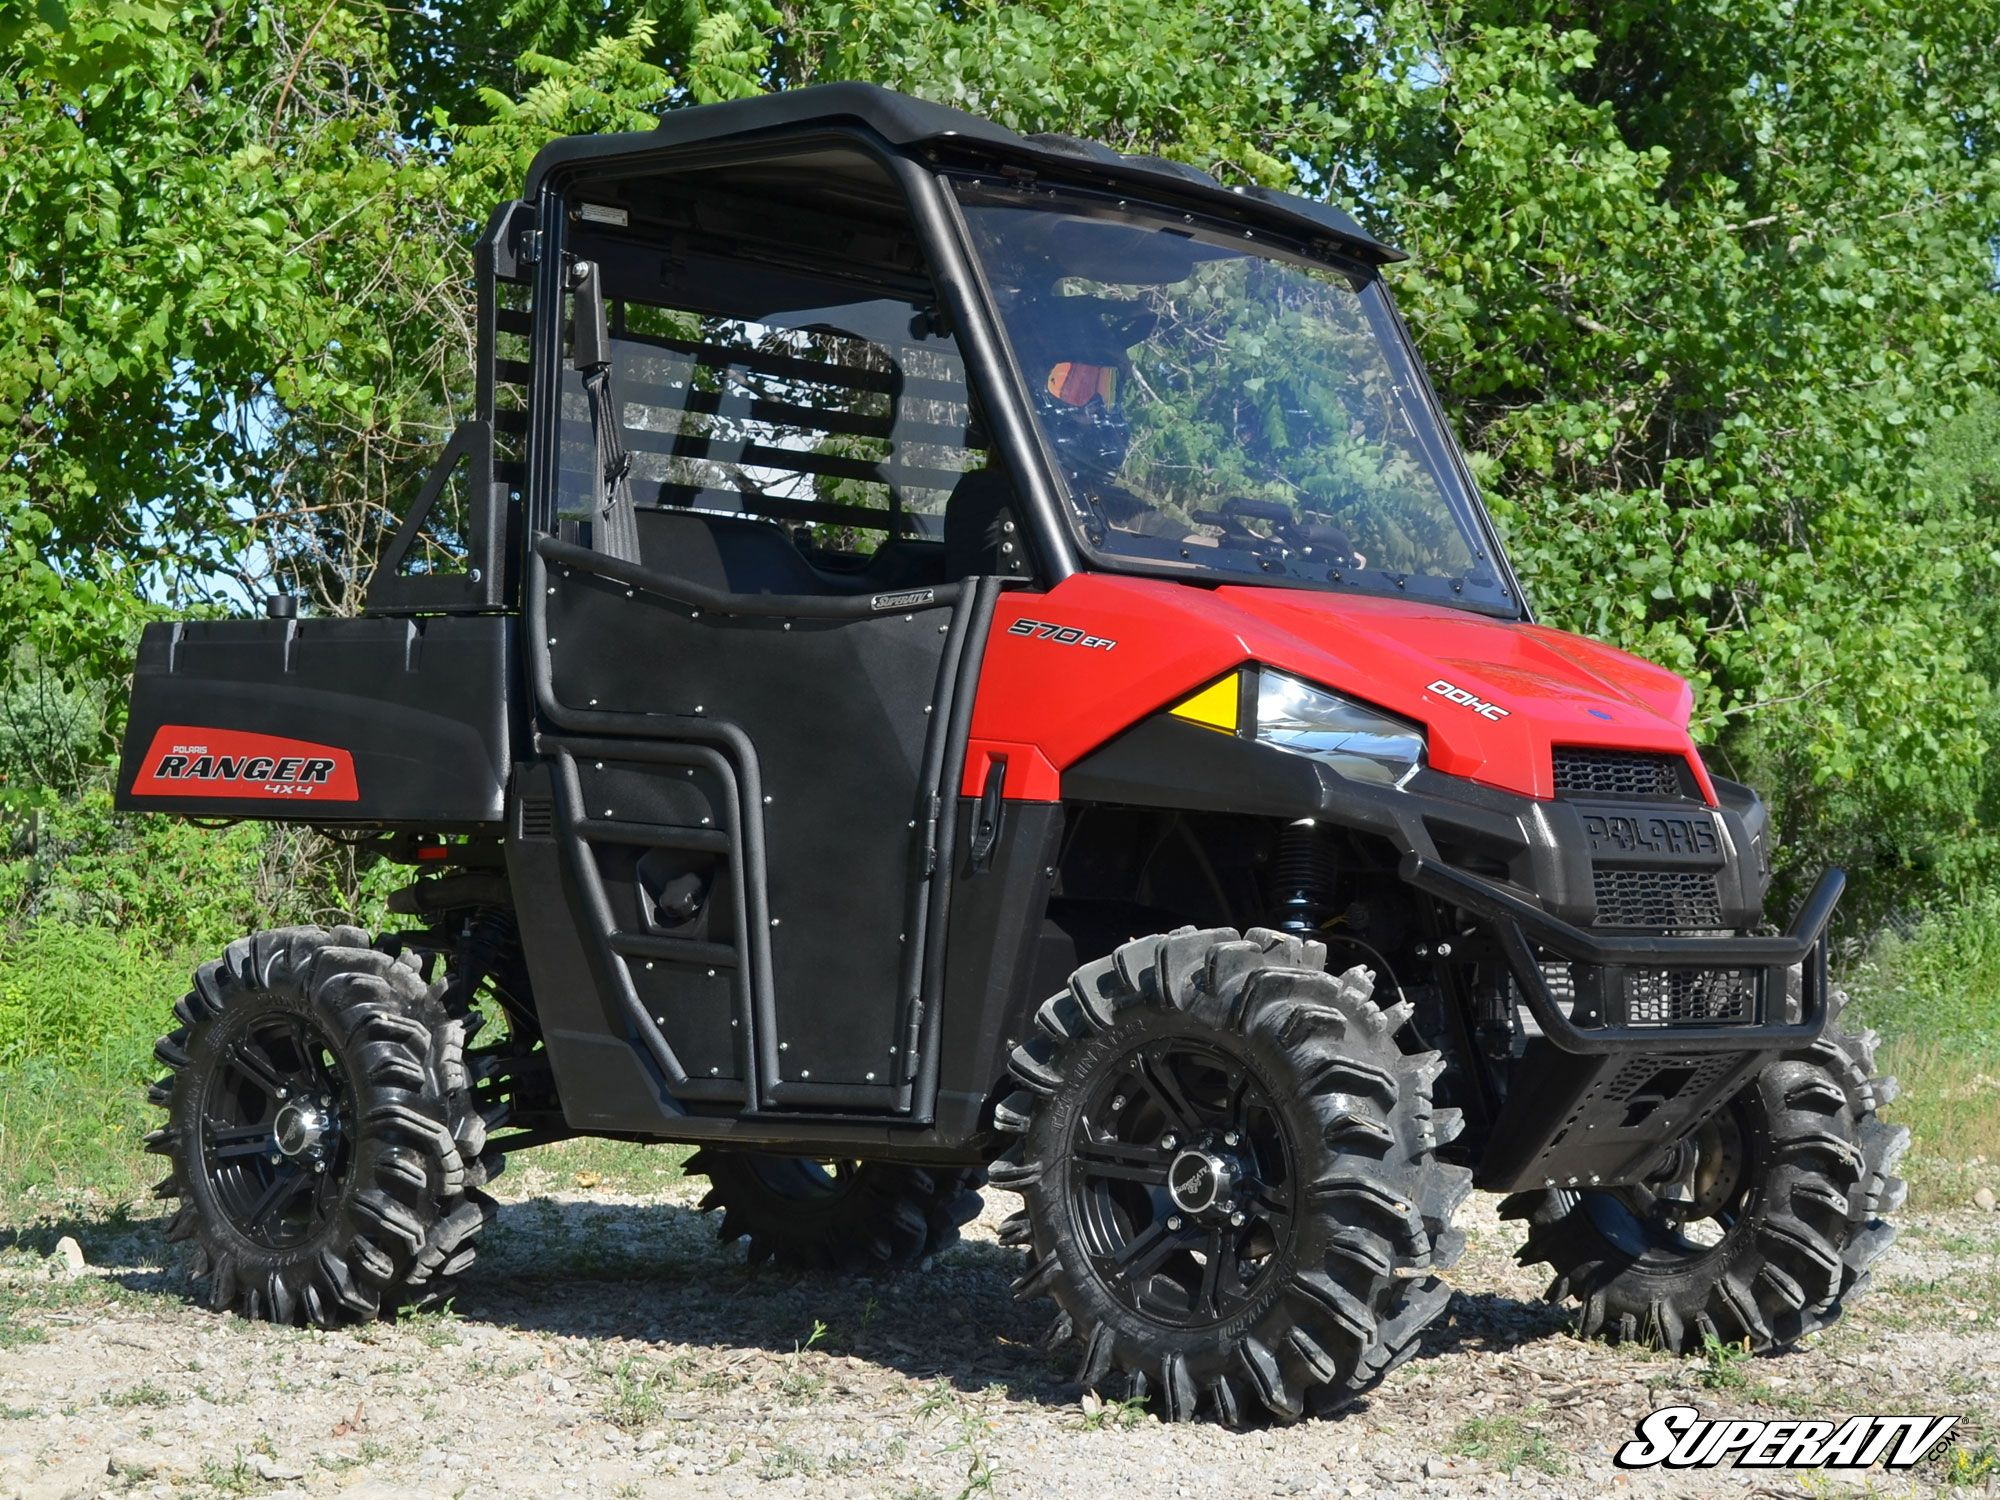 super atv ranger 570 midsize doors. Black Bedroom Furniture Sets. Home Design Ideas